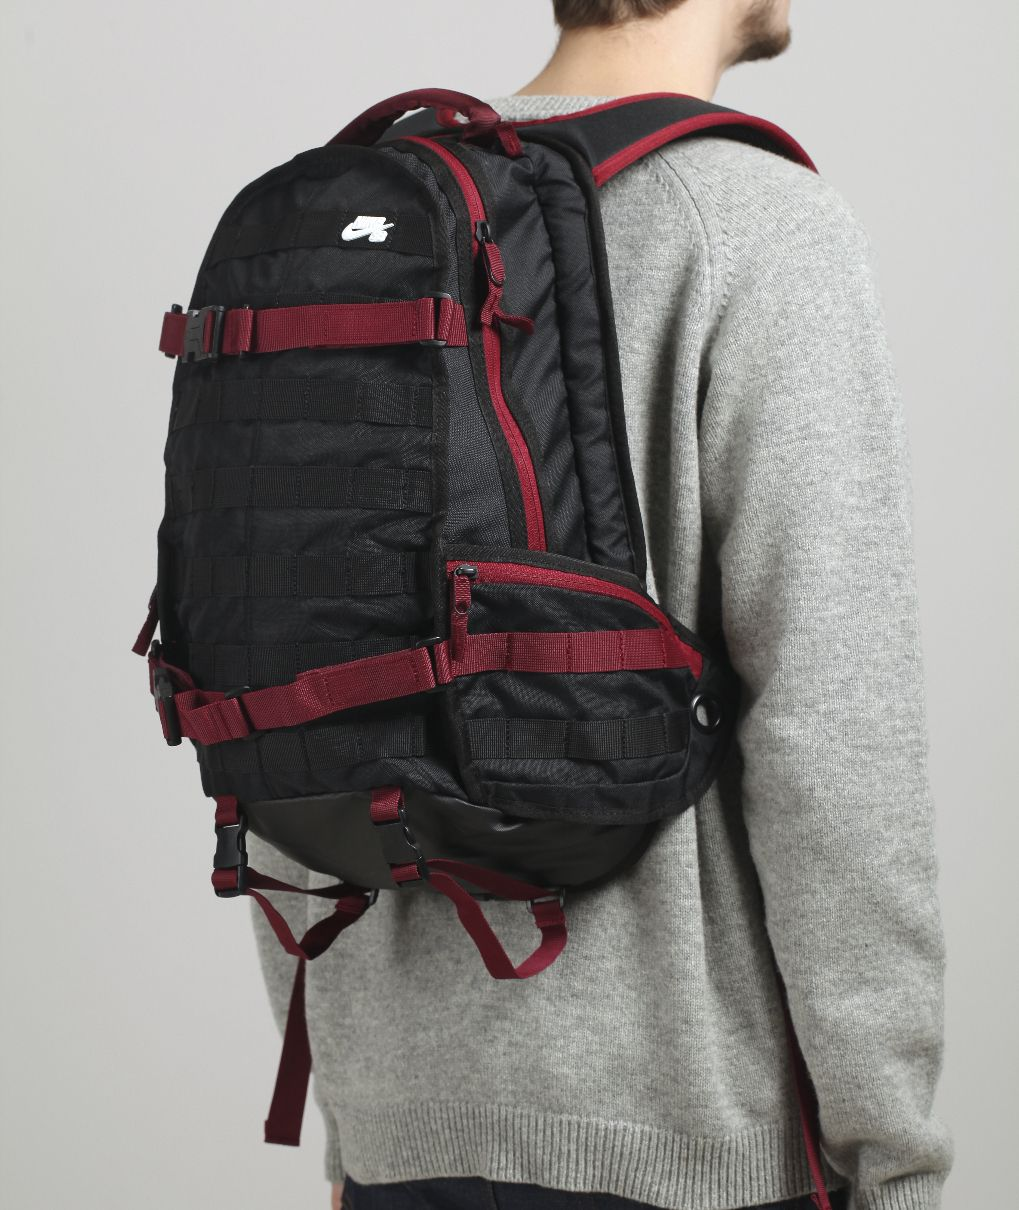 704eefb8ad nike sb bagpacks | nike sb backpack rpm backpack rpm fra nike sb this  commodity is out of .